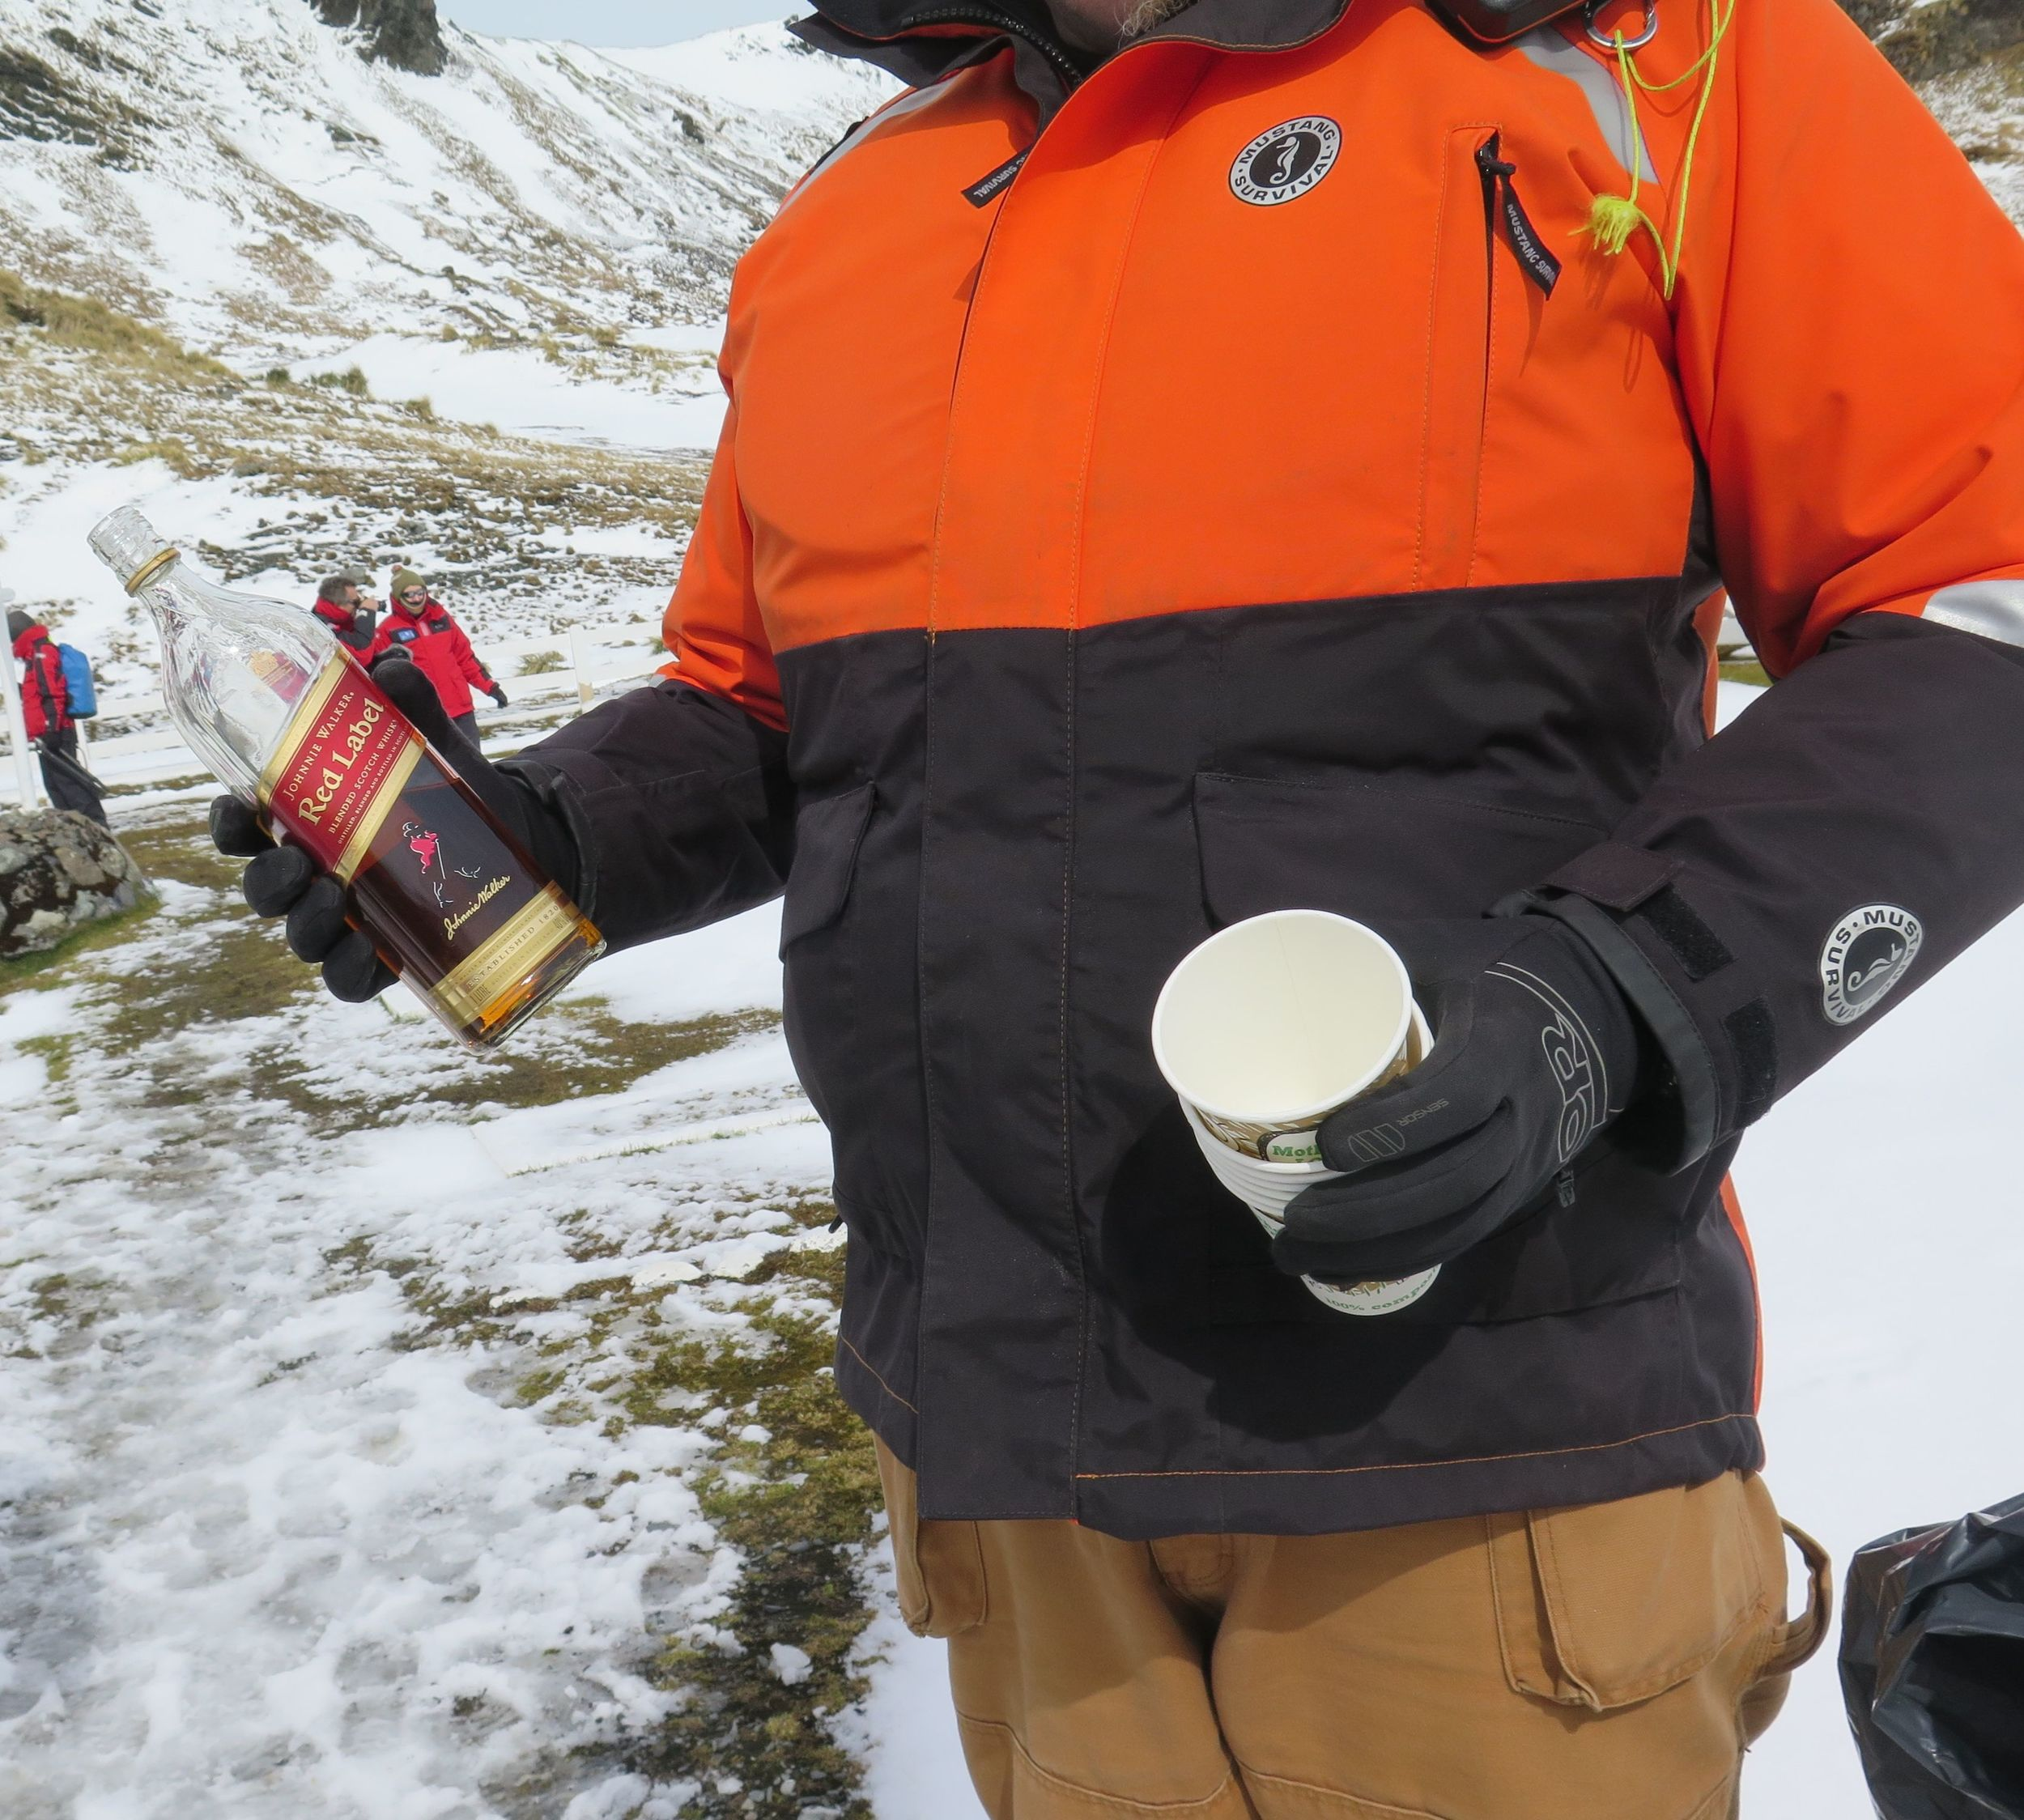 In keeping with the tradition of toasting Shackleton at his grave, a member of our crew welcomed us with a bottle of whiskey.